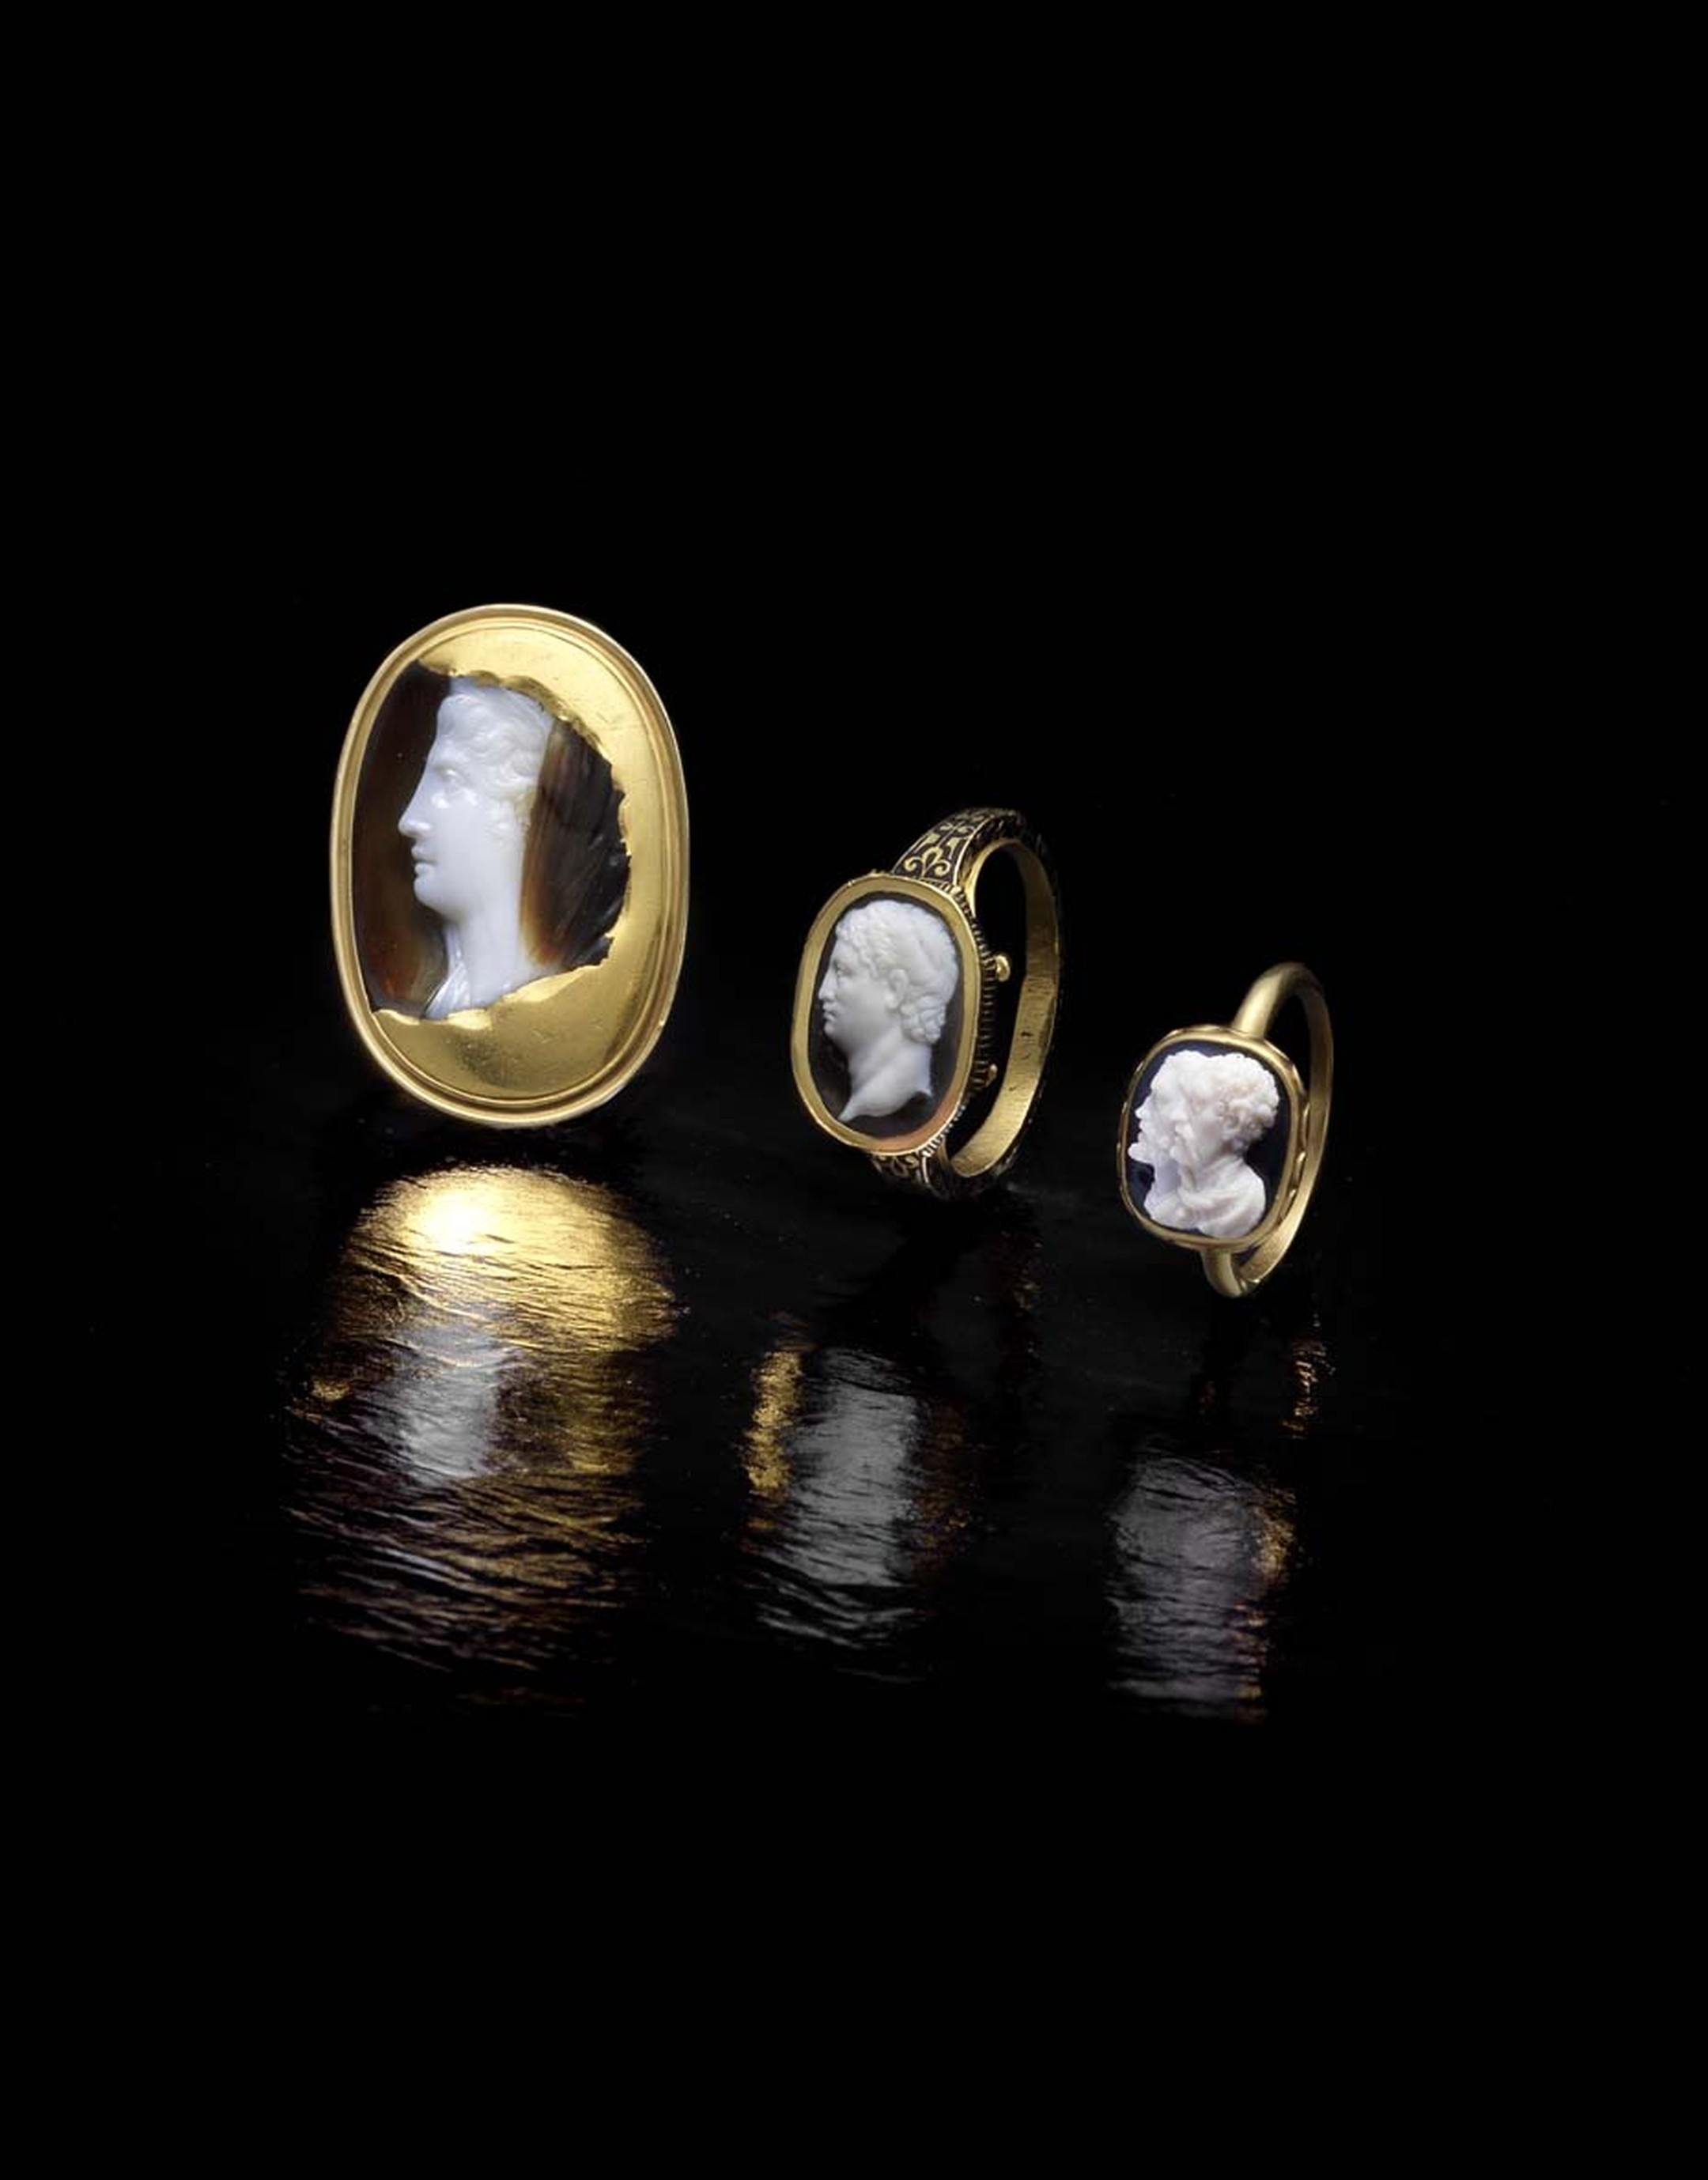 Various cameo rings, all part of the Ceres Collection, collected by an American family over a period of 60 years was sold on 17th September 2014 at Bonhams London.